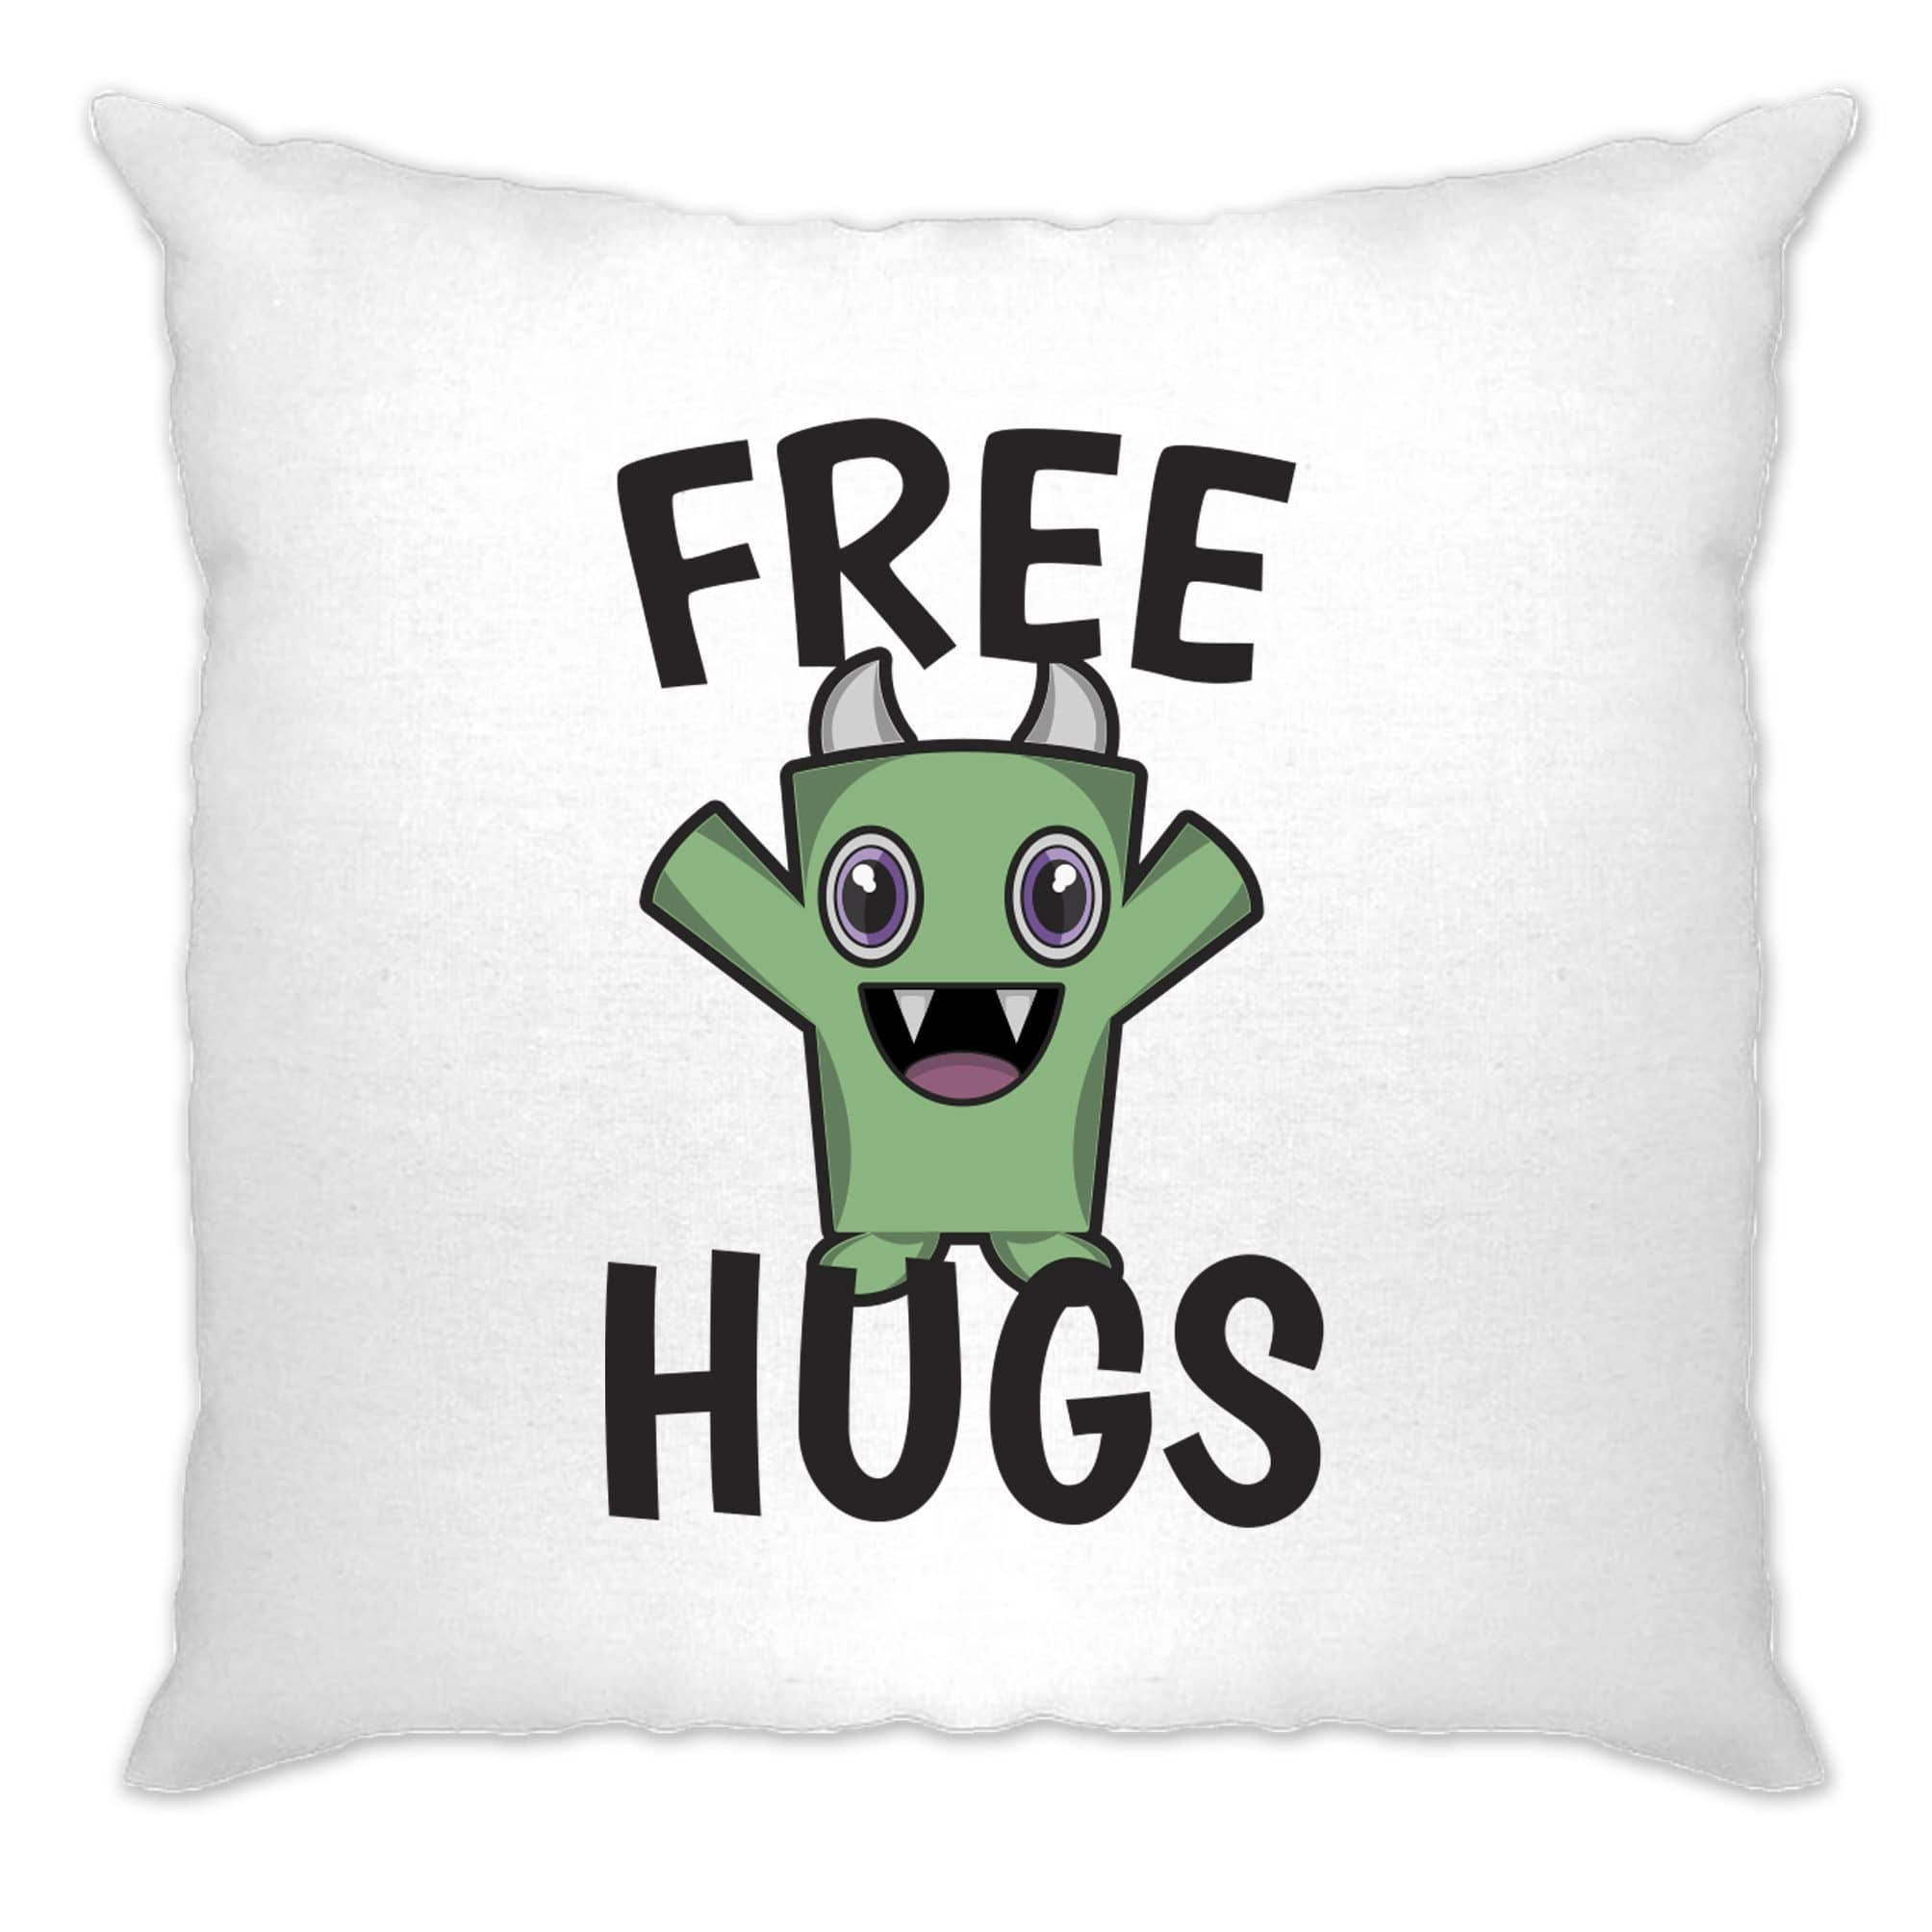 Festival Cushion Cover Free Hugs Slogan With Cute Monster